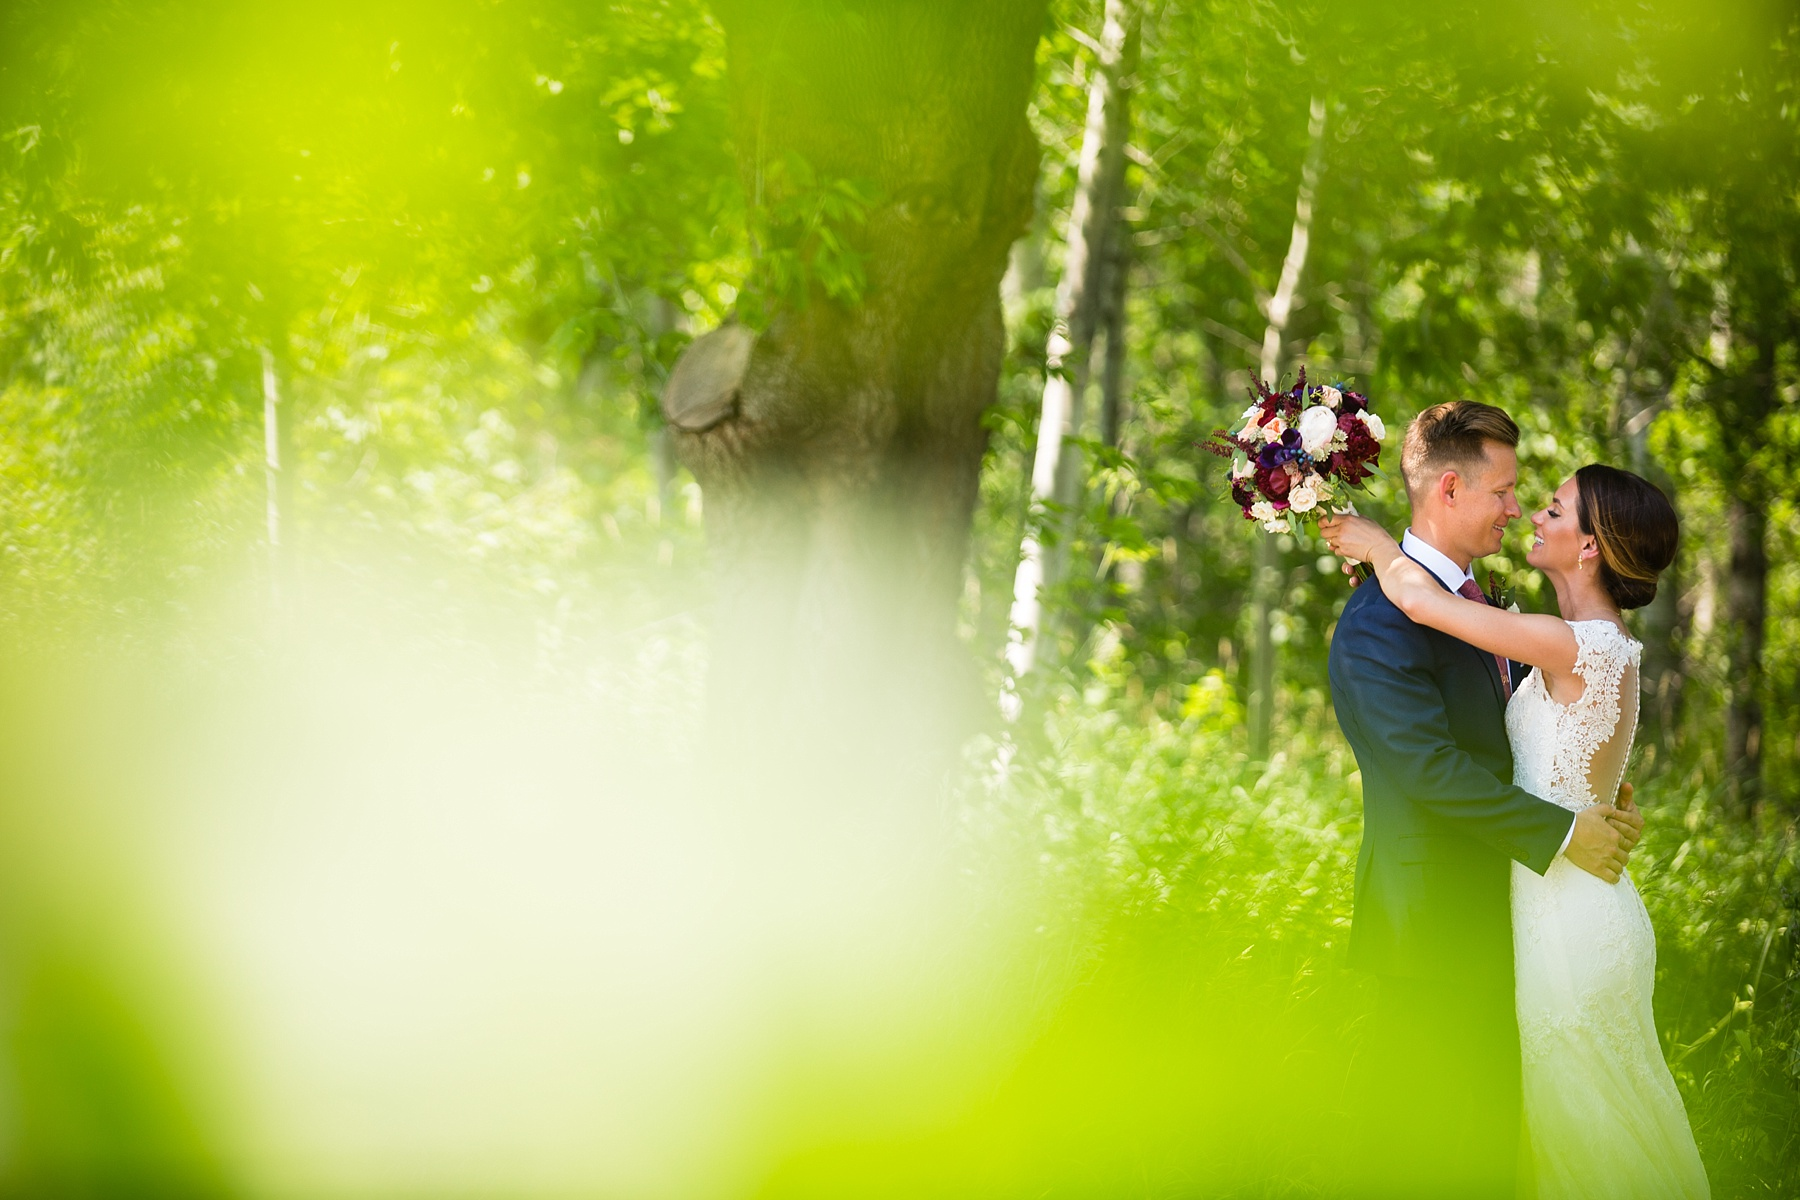 Brandon_Shafer_Photography_Traverse_City_Wedding_0025.jpg